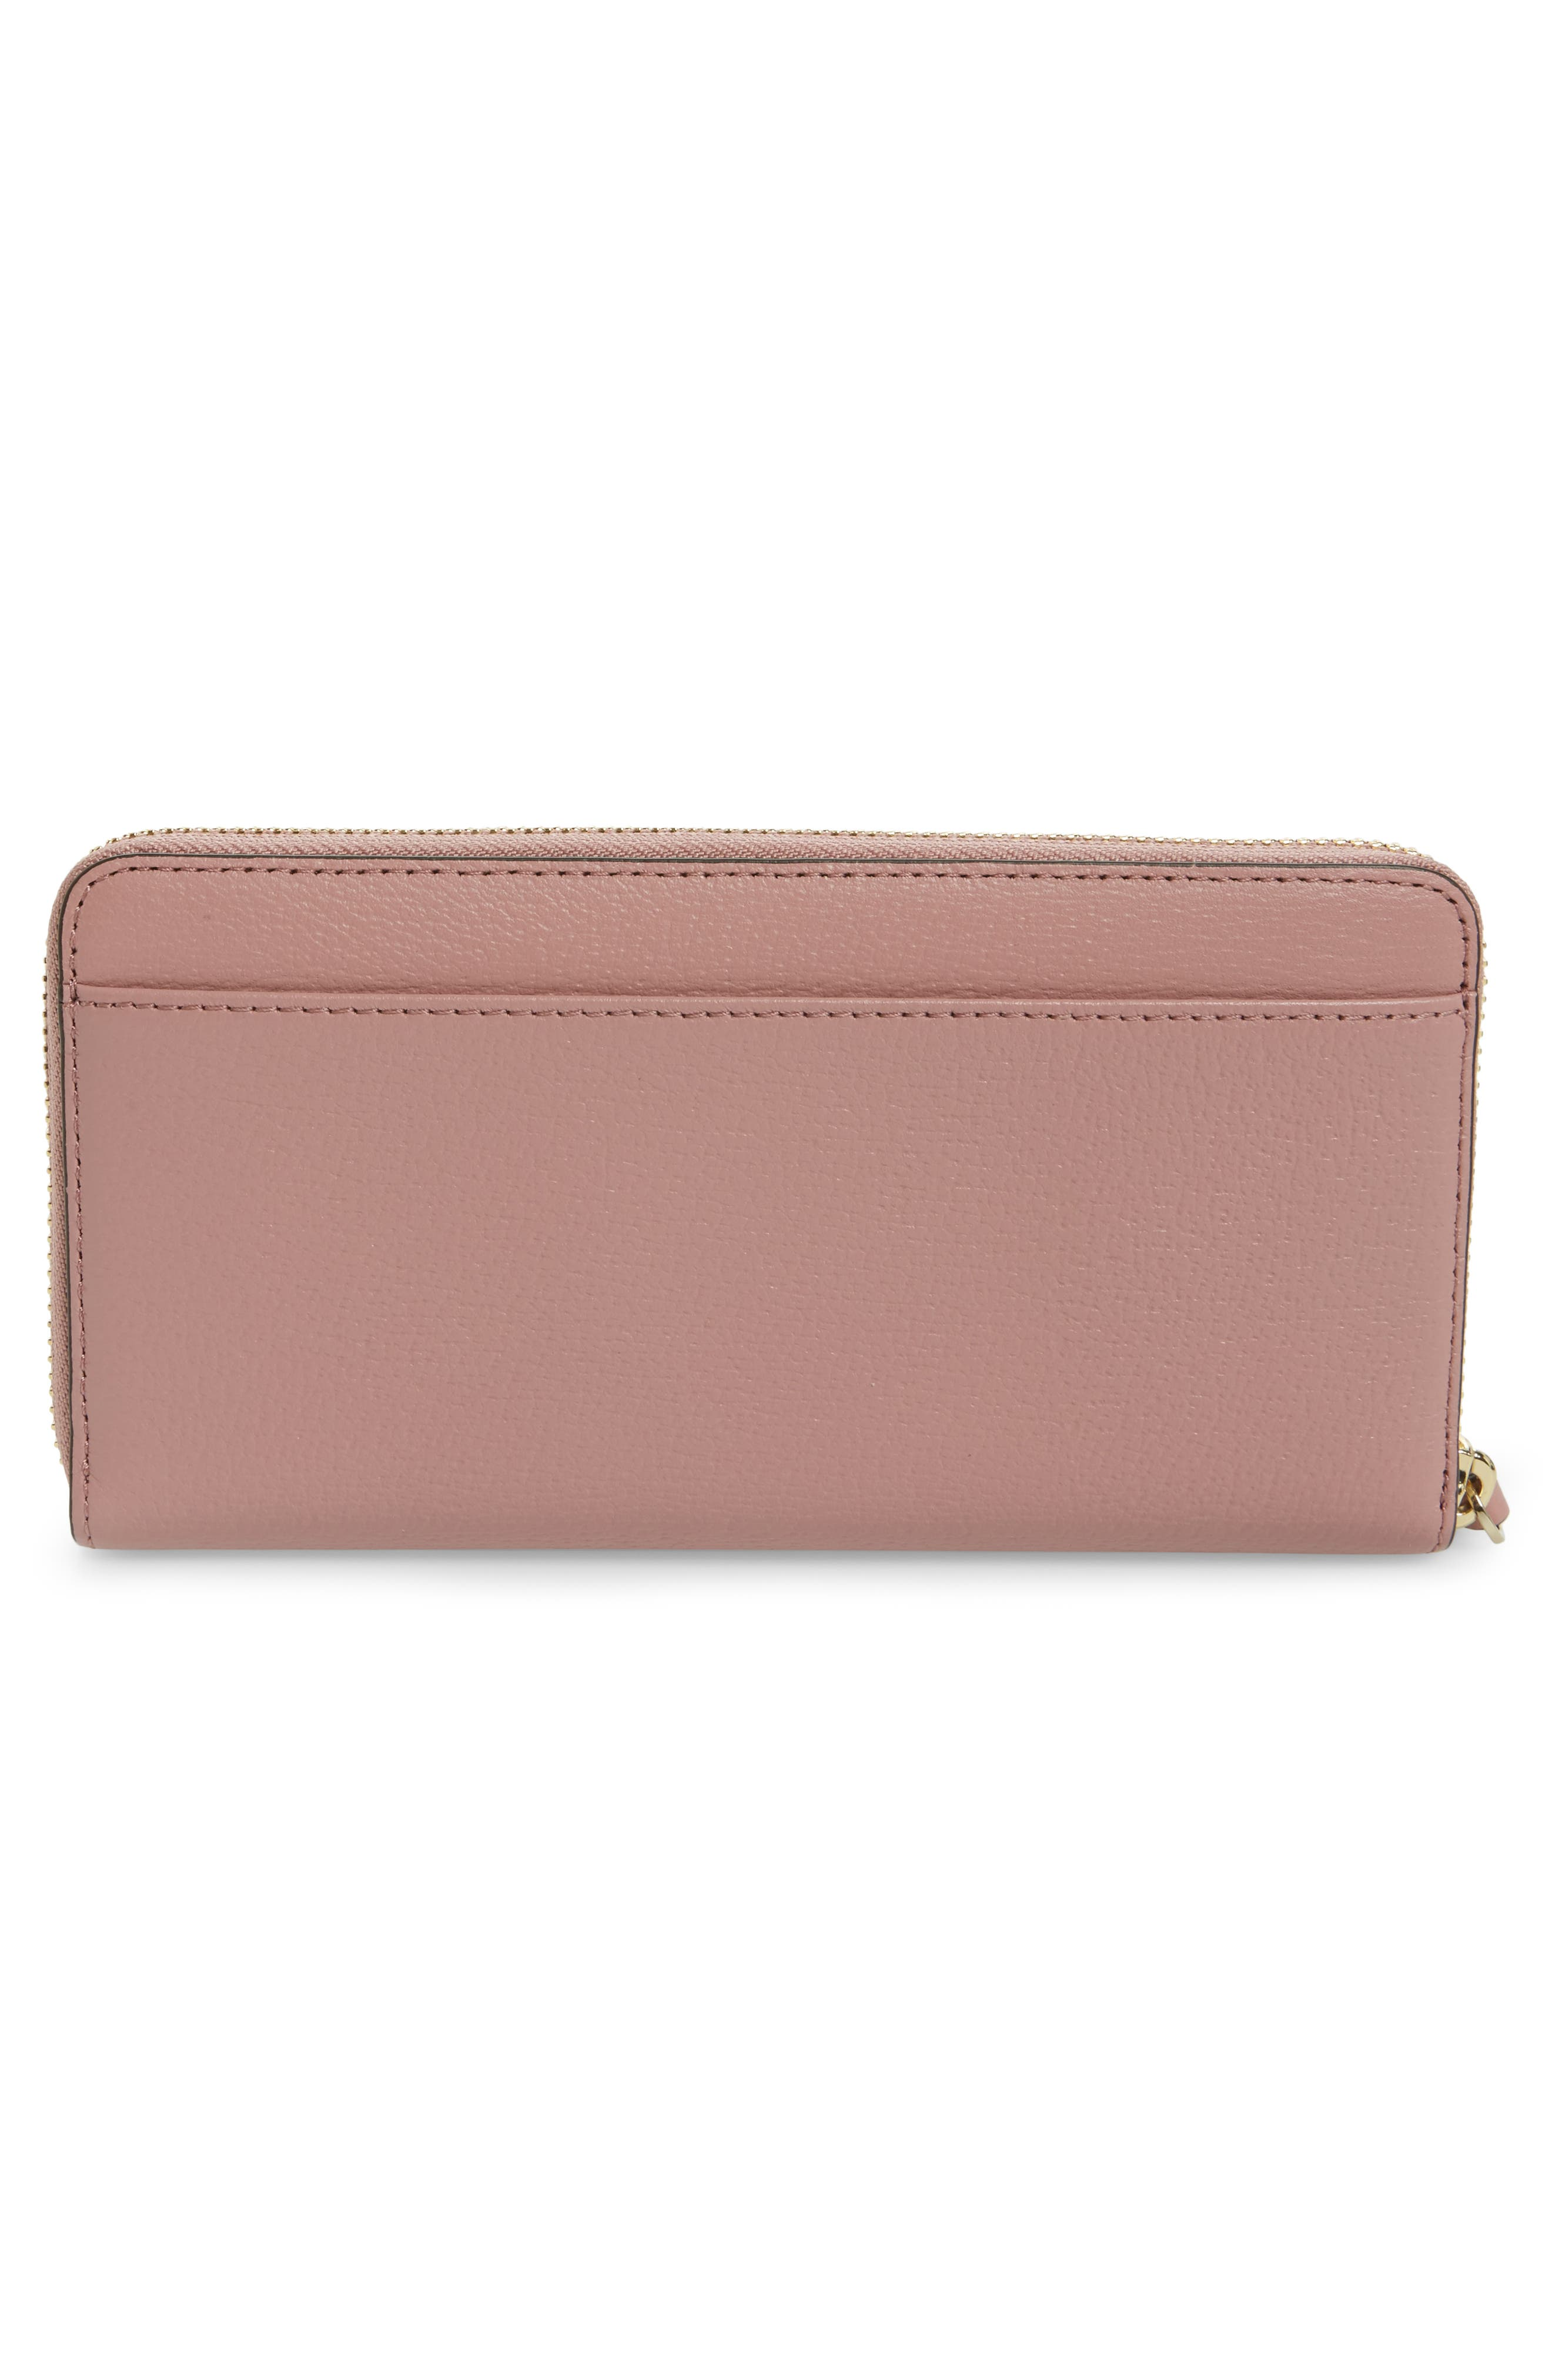 olive drive - lacey bow leather wallet,                             Alternate thumbnail 6, color,